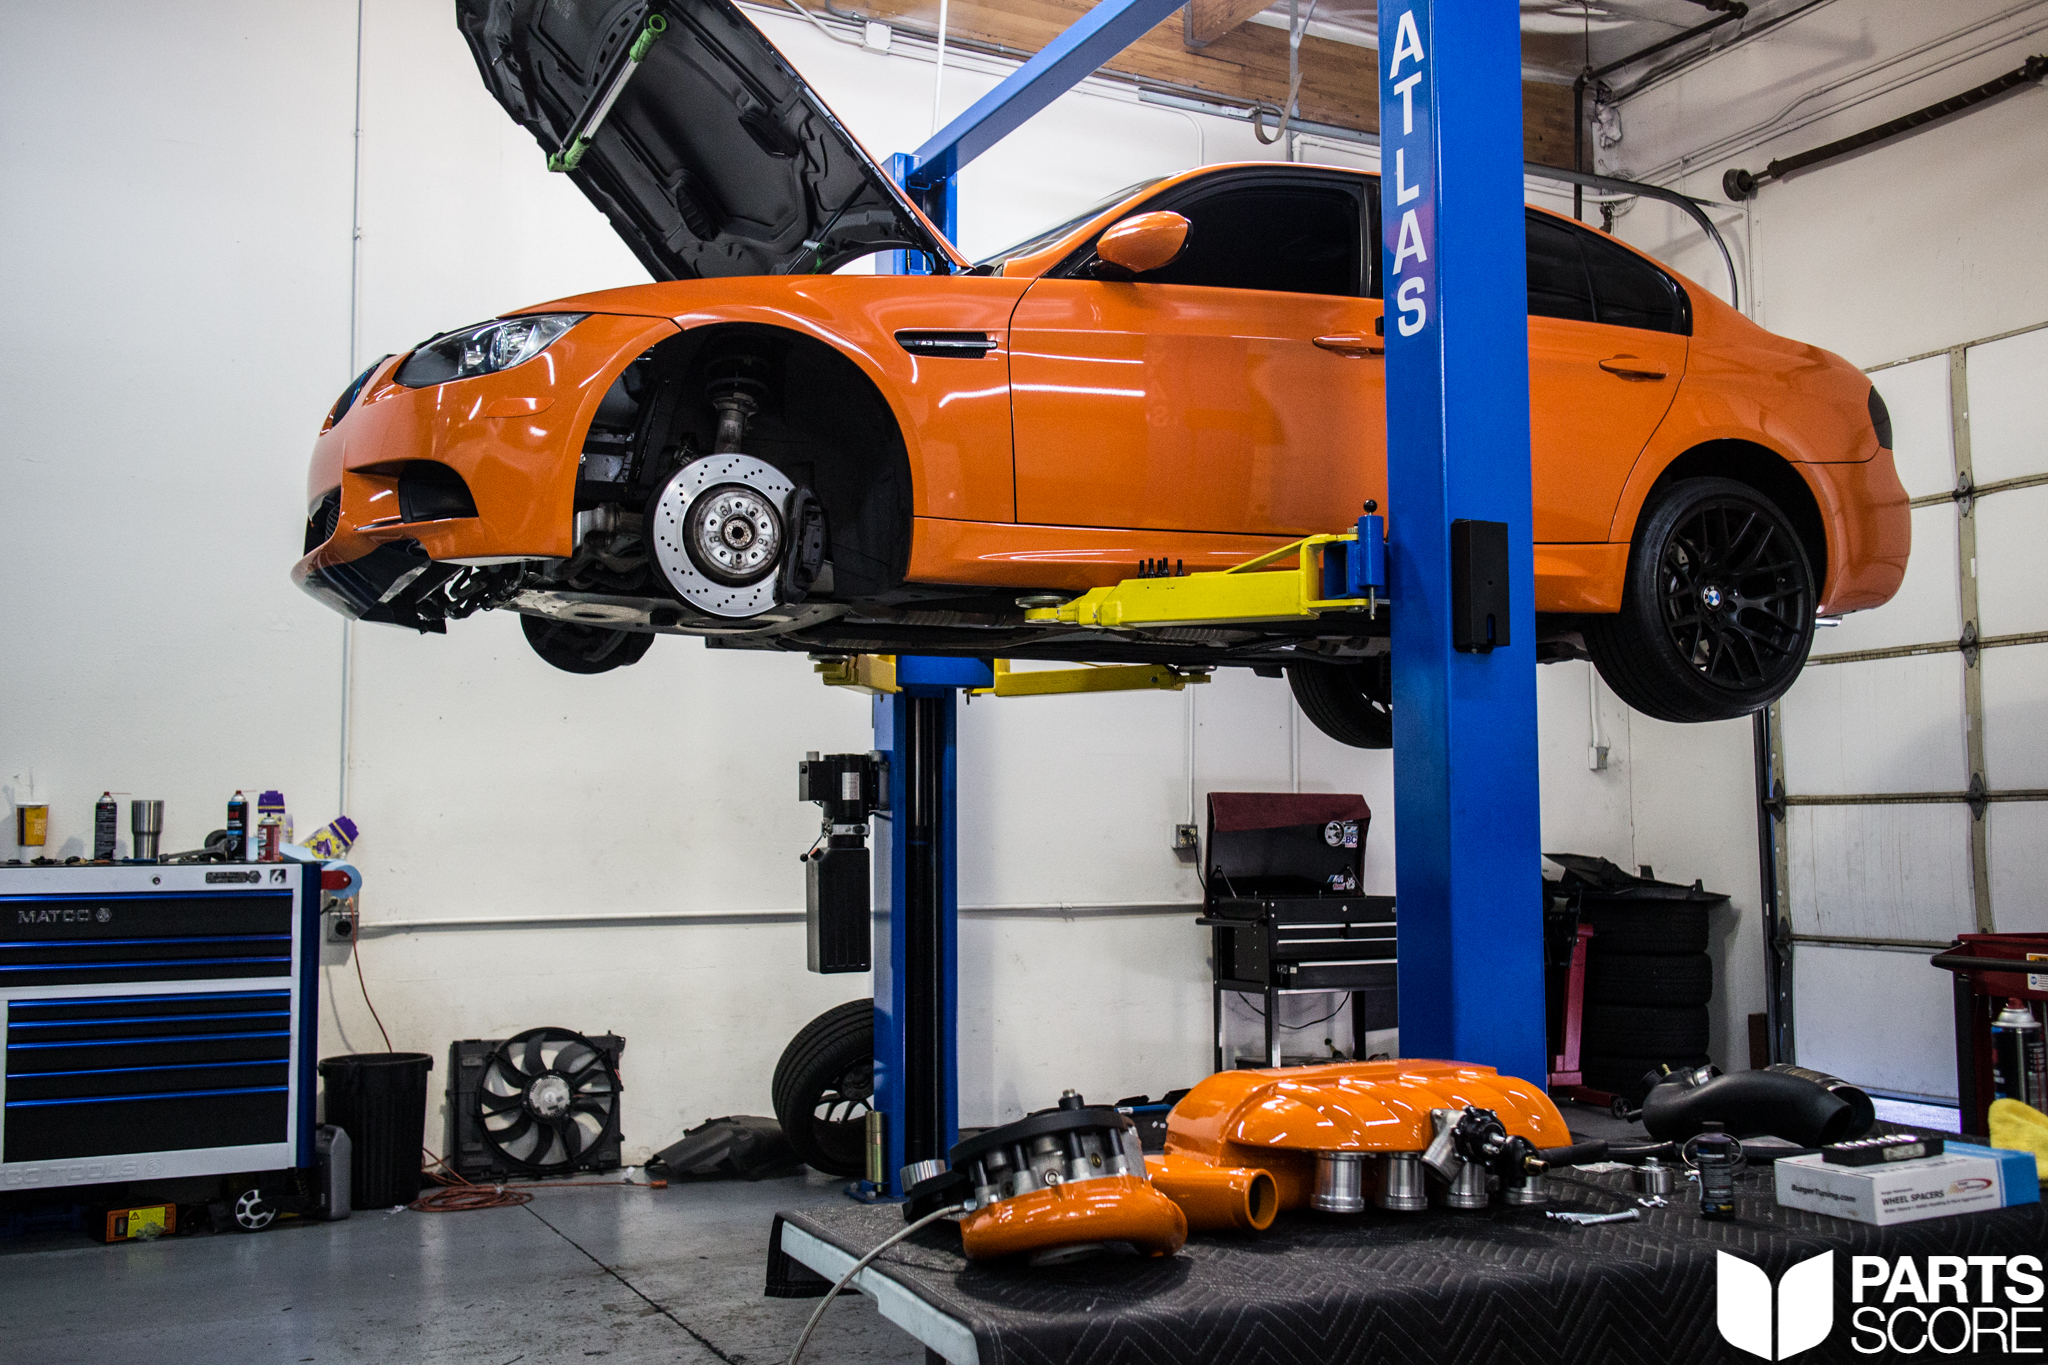 Parts score, bmw, m3, e90m3, supercharger, esstuning, supercharged, s65, v8, s65 v8, supercharged m3, supercharger, boost, fireorange, sleepersedan, powdercoat, powdercoating, fireorange, orange, insane, bmwm, bmwmpower, bmwmperformance, sheerdrivingpleasure, partsscore, conduktco, canibeat, mpower,